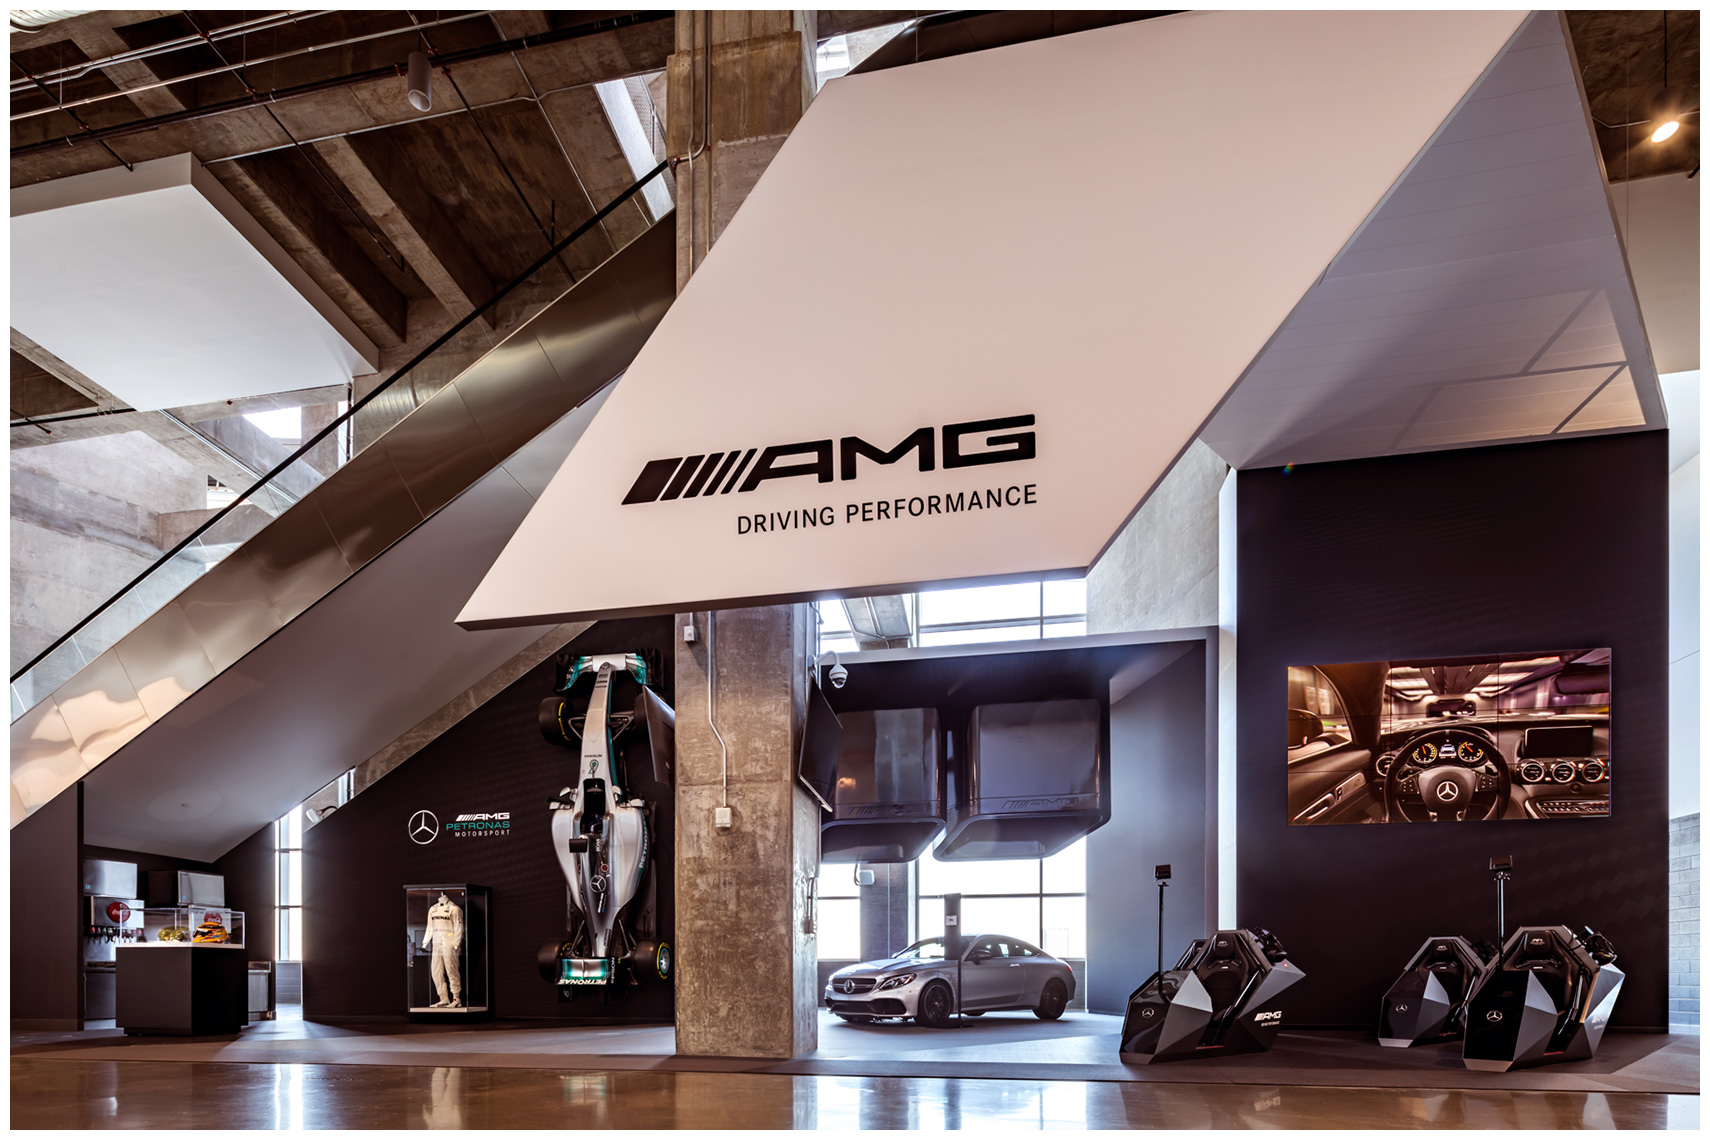 amg petronas vr virtual reality activation inside the mercedes-benz stadium